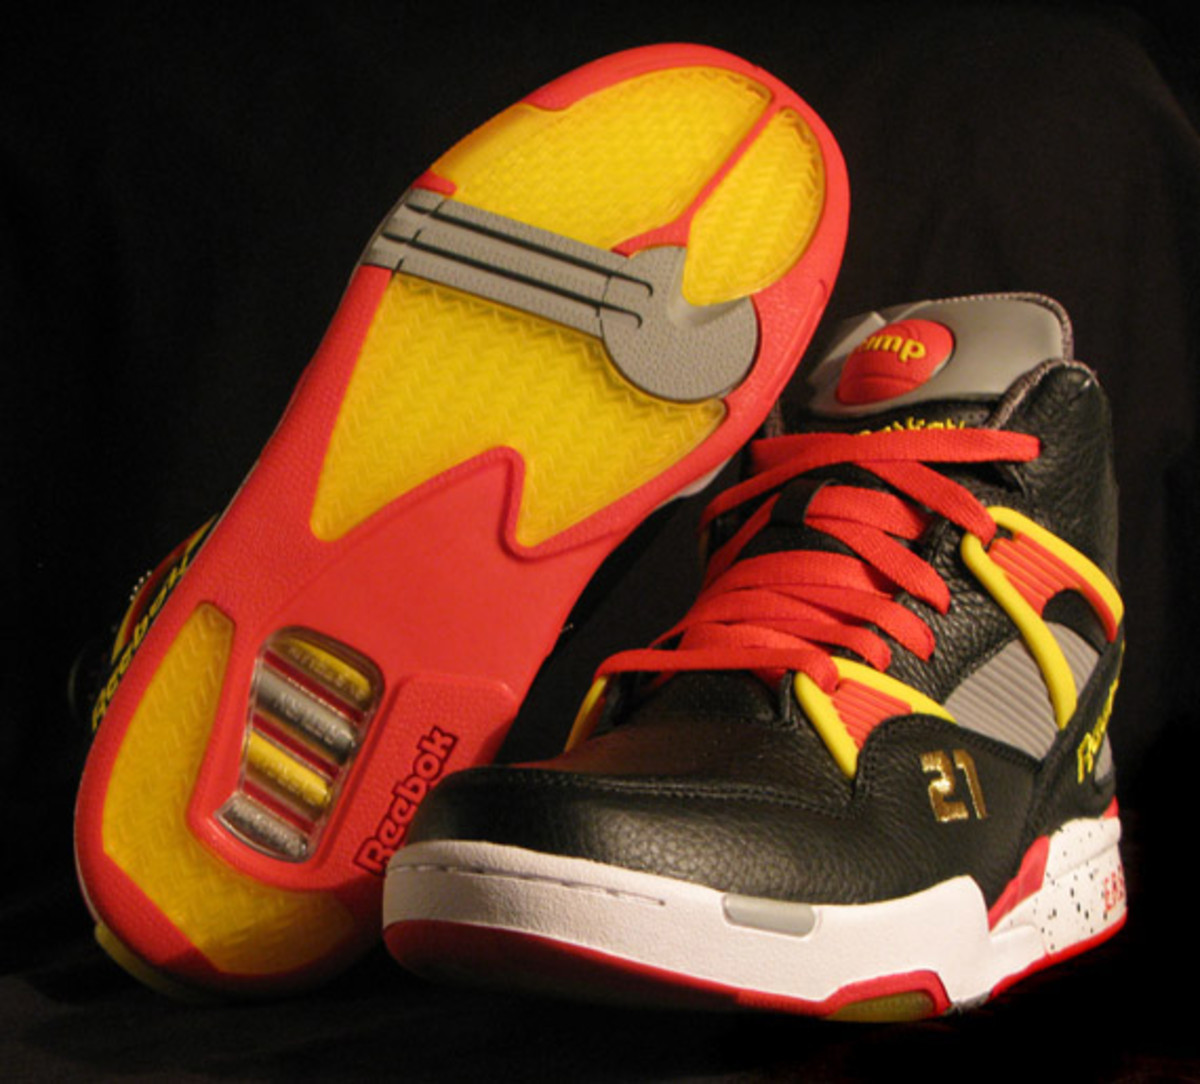 packer-shoes-x-reebok-nique-pump-omni-zone-detailed-images-10